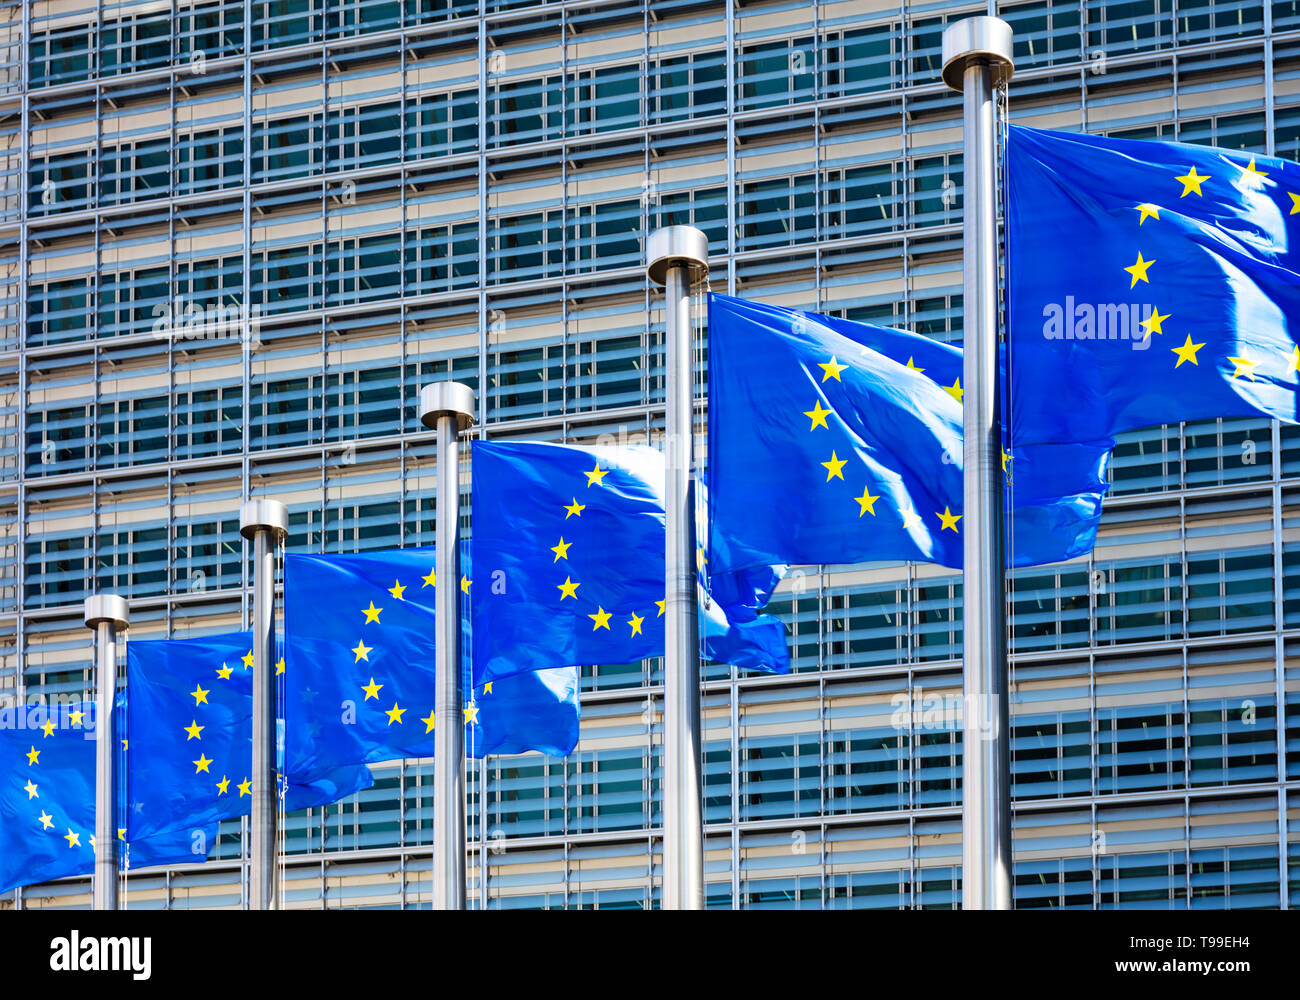 EU flags of Europe outside the EU commission building european commission building Berlaymont building, Brussels, Belgium, EU, Europe - Stock Image